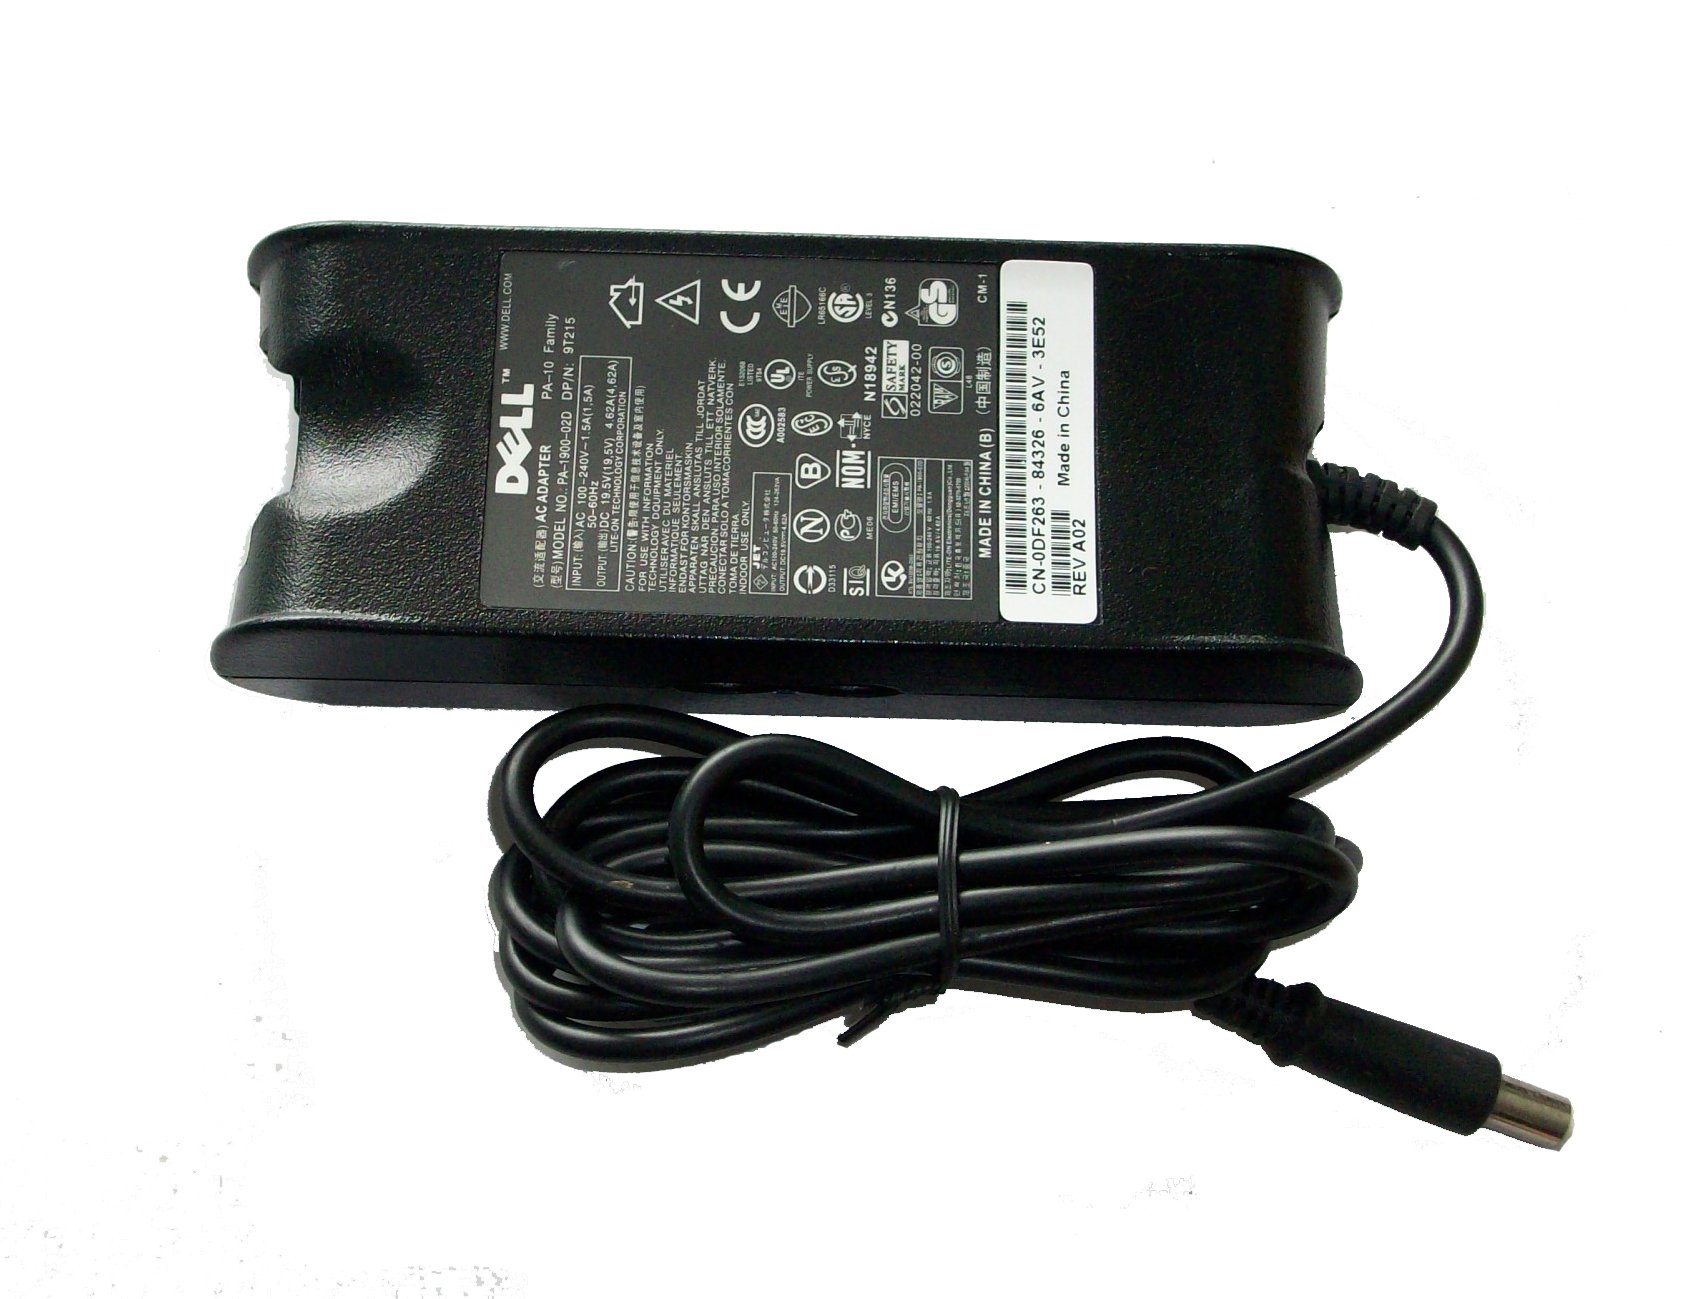 90W Dell Latitude E6430s 00071 Charger AC Adapter Power Cord [dell90w5.0hou-657]